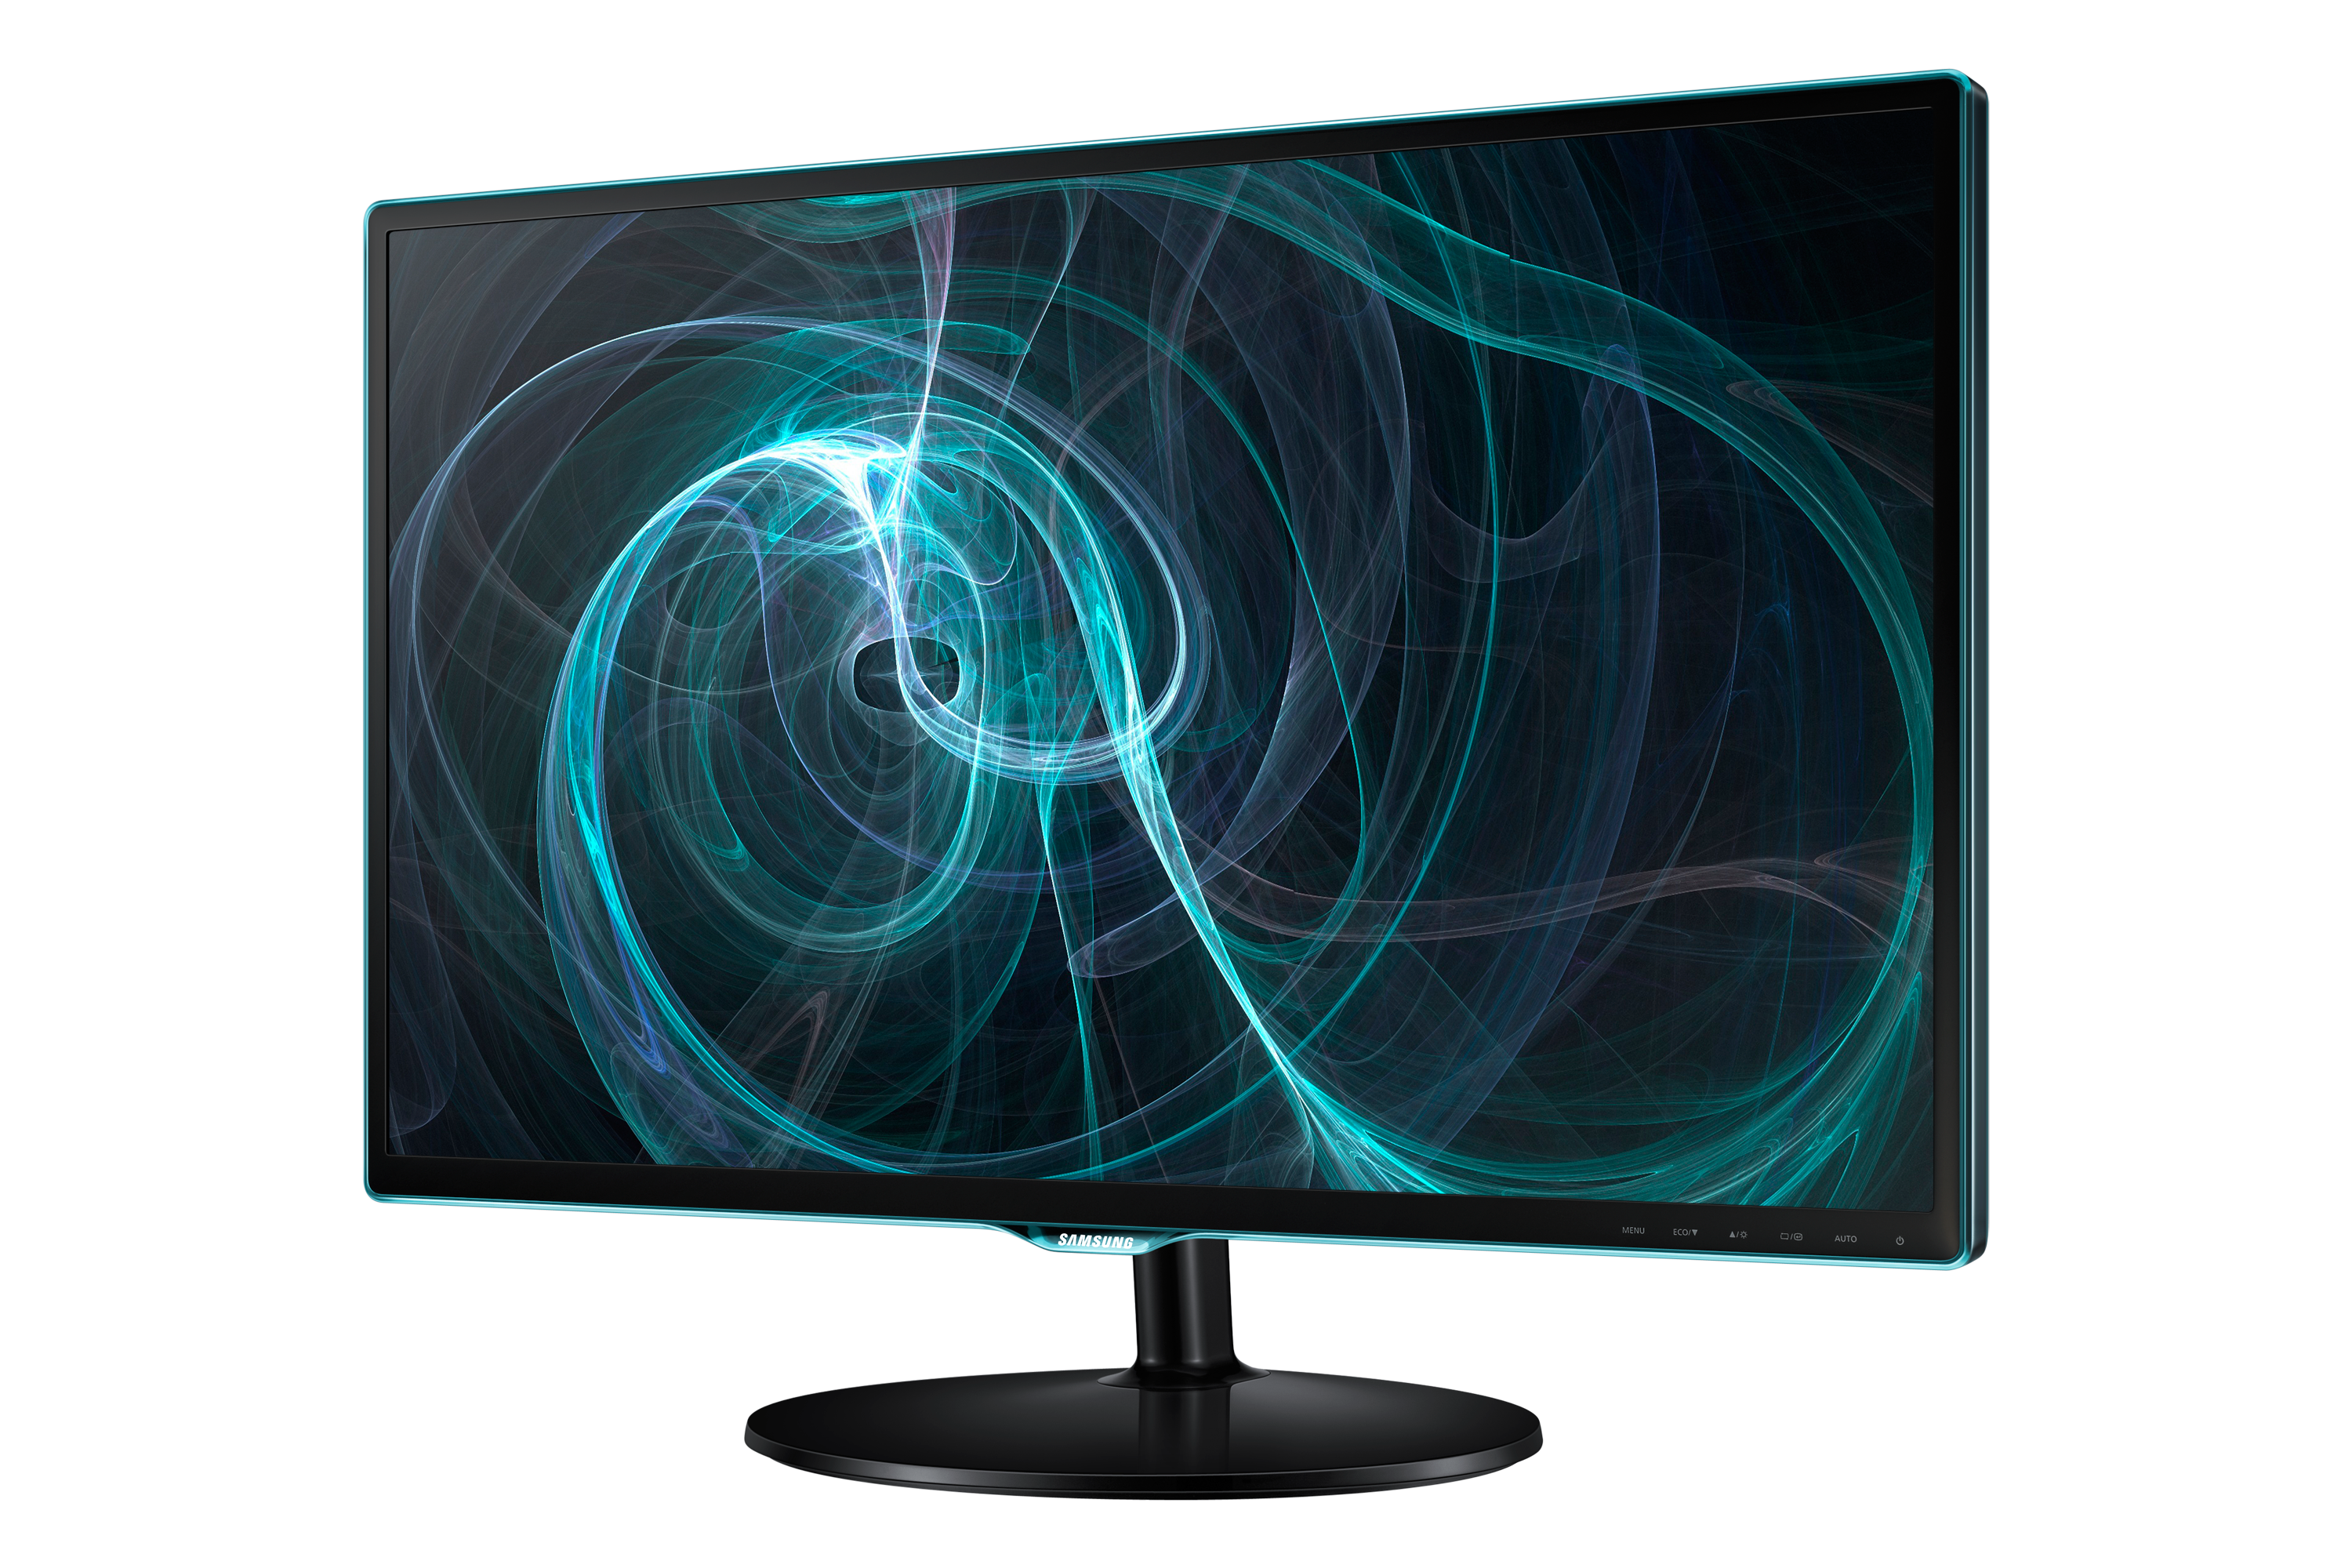 Moniteur Full HD 22'' - Touch Of Color